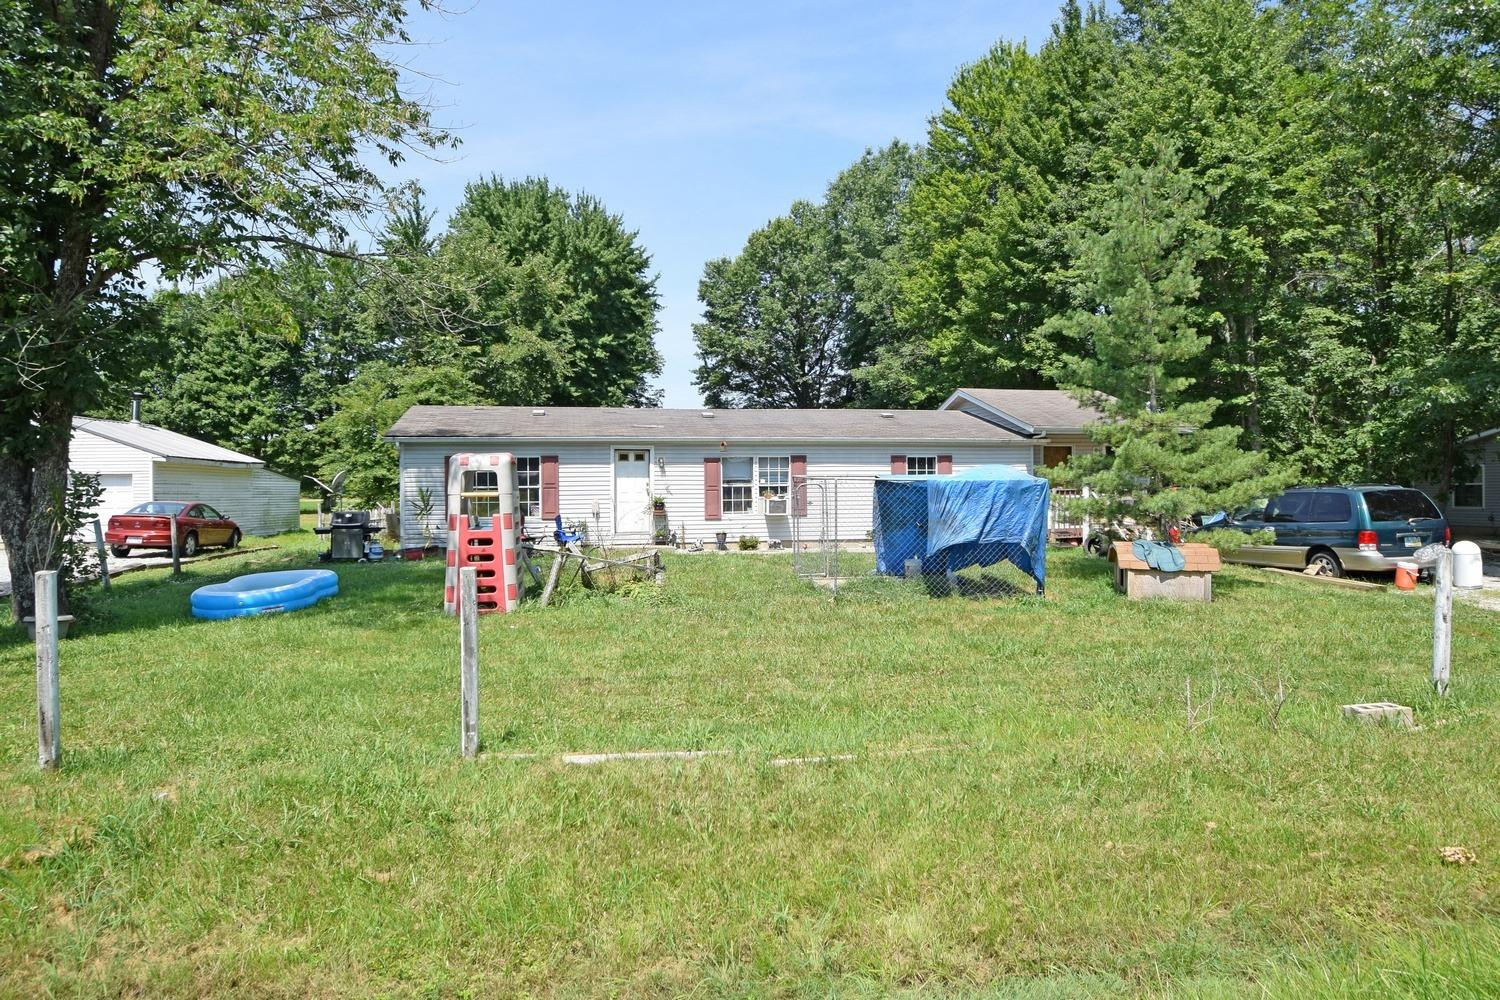 Photo 1 for 12039 Liming Van Thompson Rd Clark Twp, OH 45106